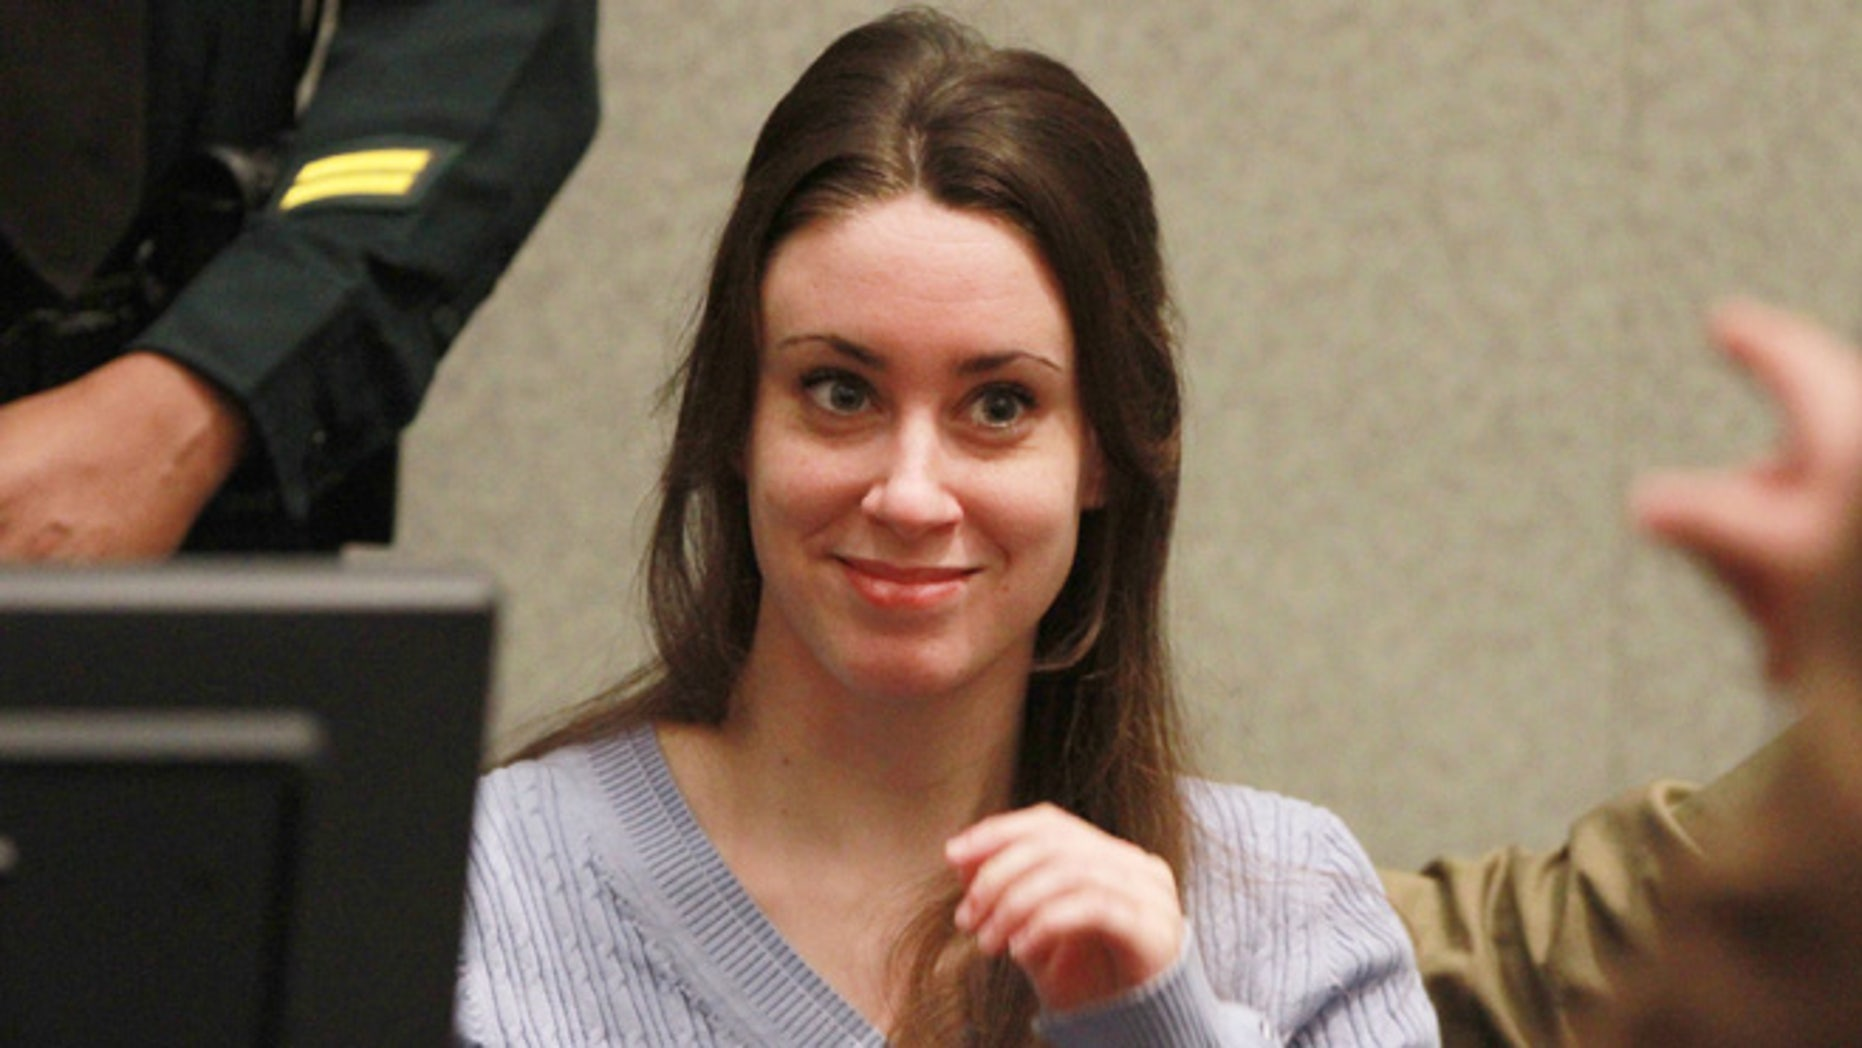 Casey Anthony is reportedly partying more and trying to put her past behind her now that it's been eight years since since she was acquitted for the murder of her 2-year-old daughter Caylee, a source told People magazine. (Photo by Joe Burbank-Pool/Getty Images)